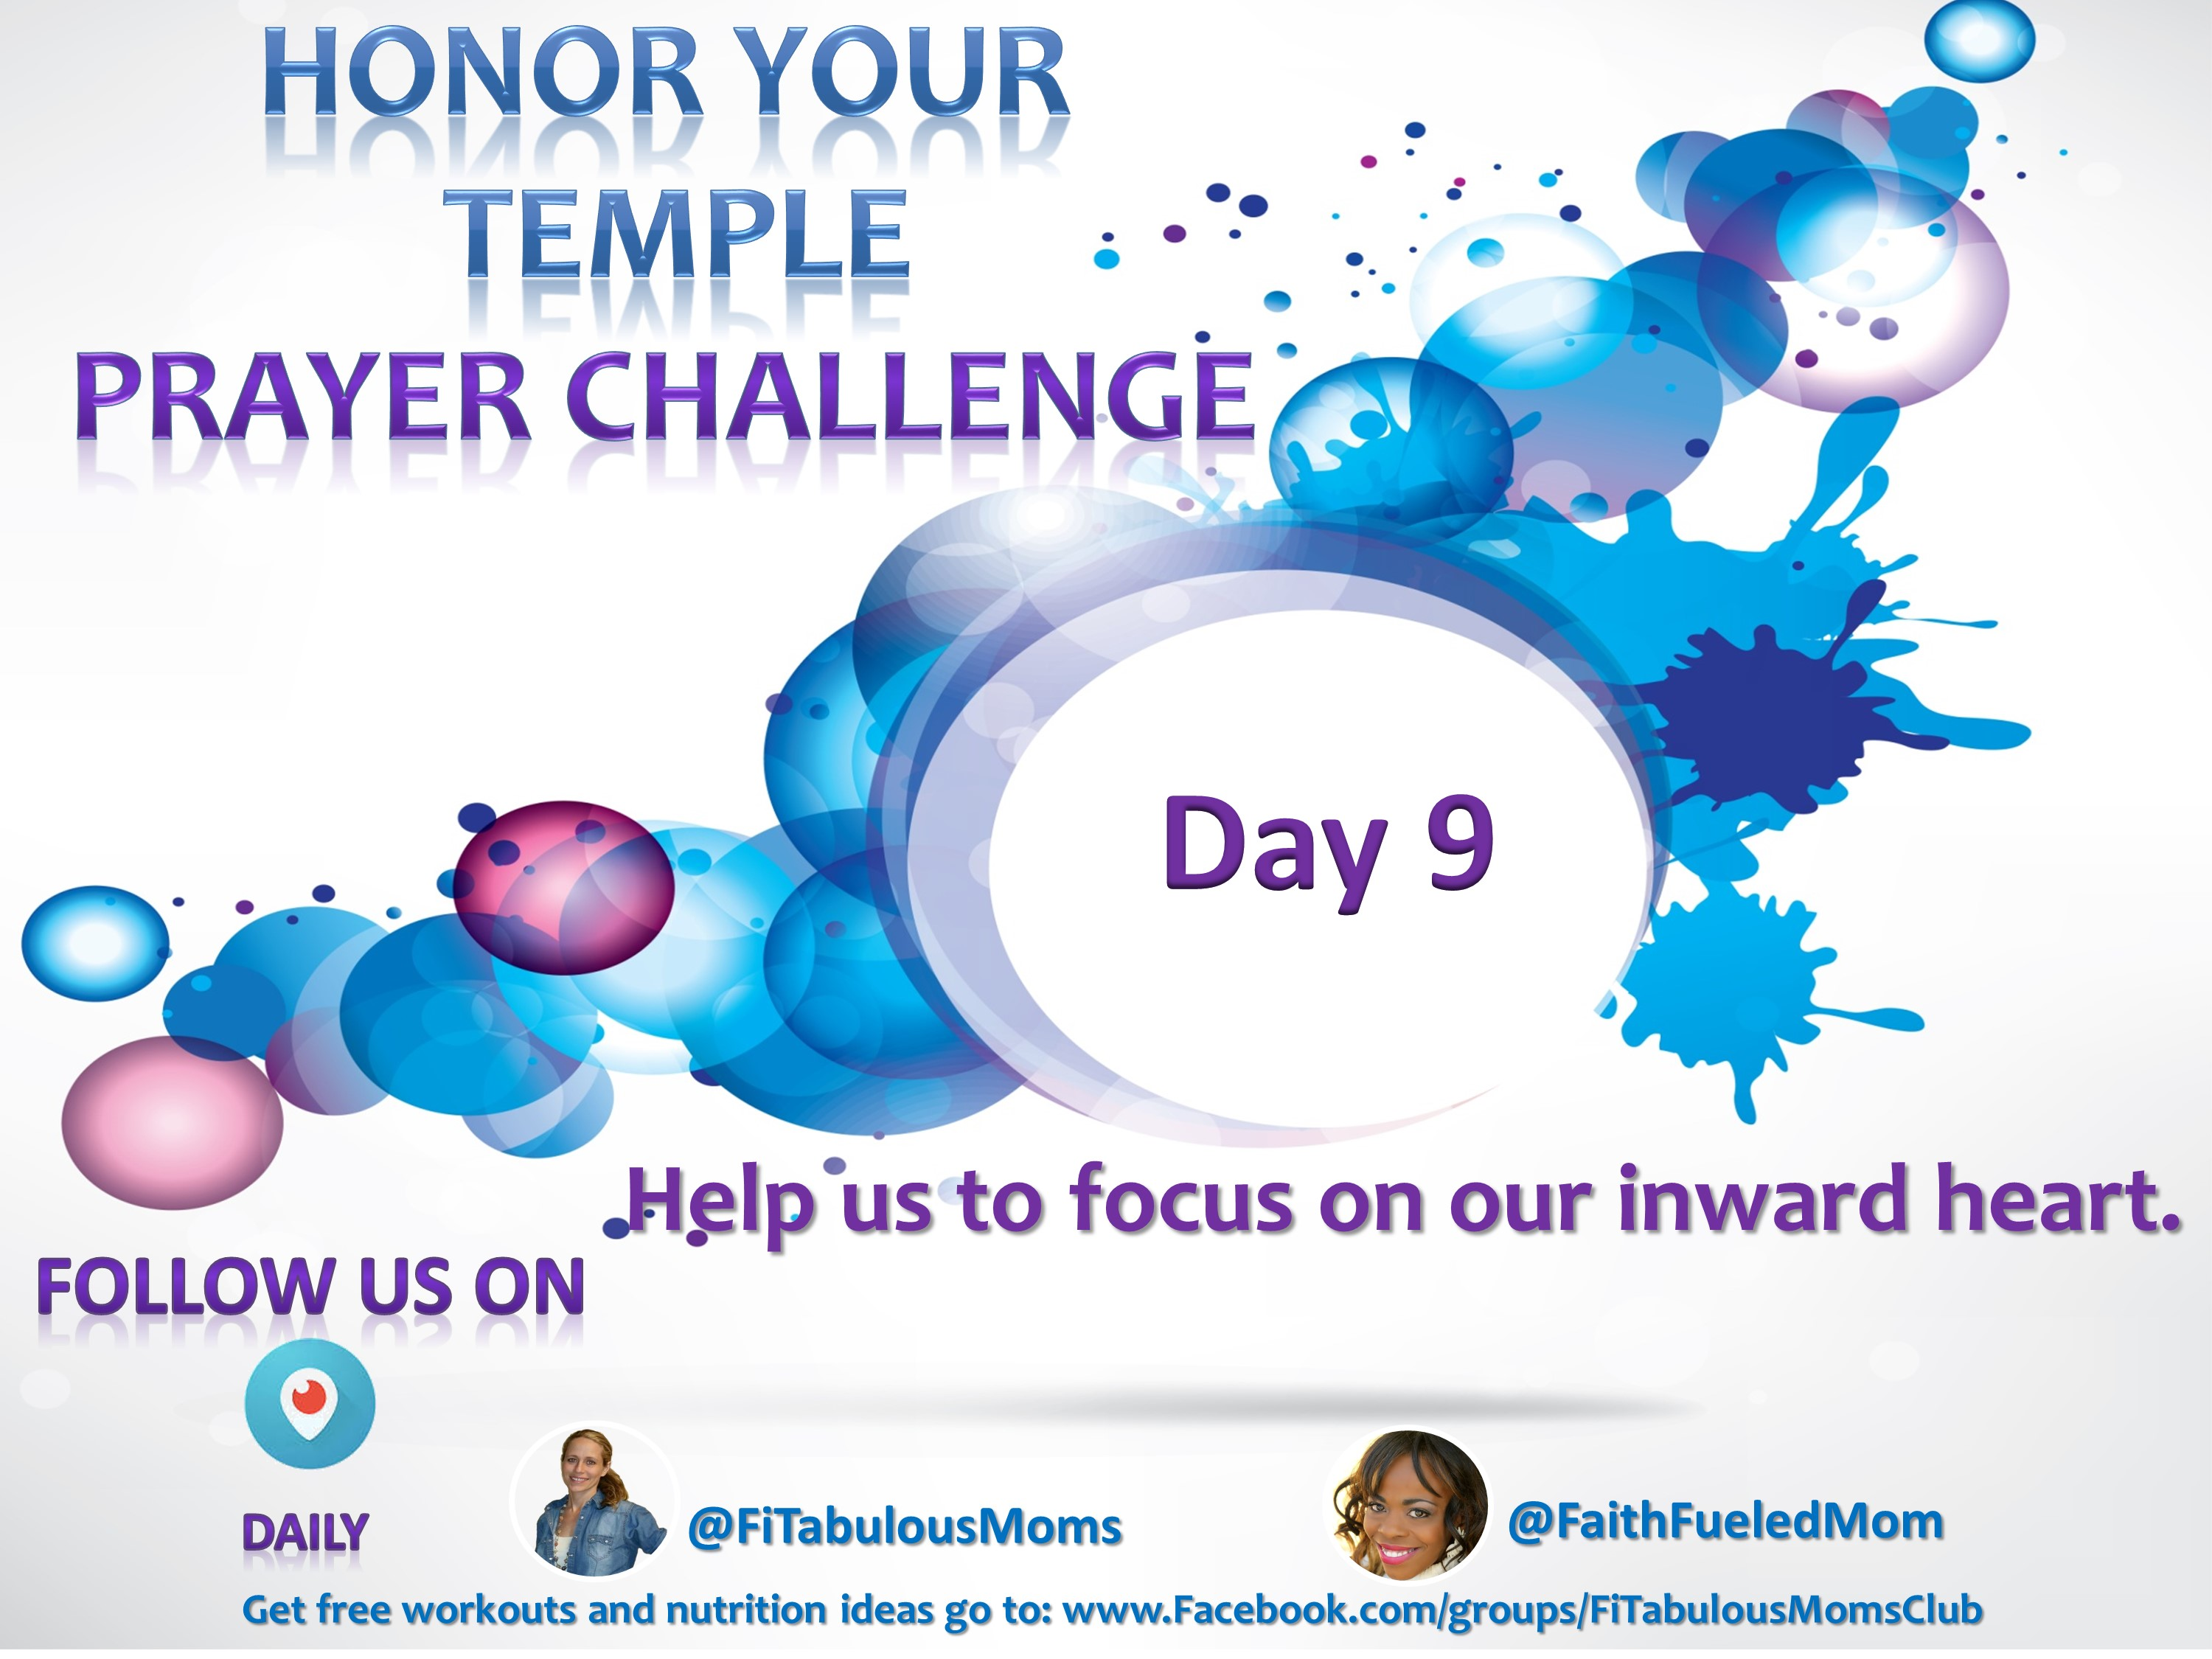 Day 9 Honor Your Temple Prayer Challenge